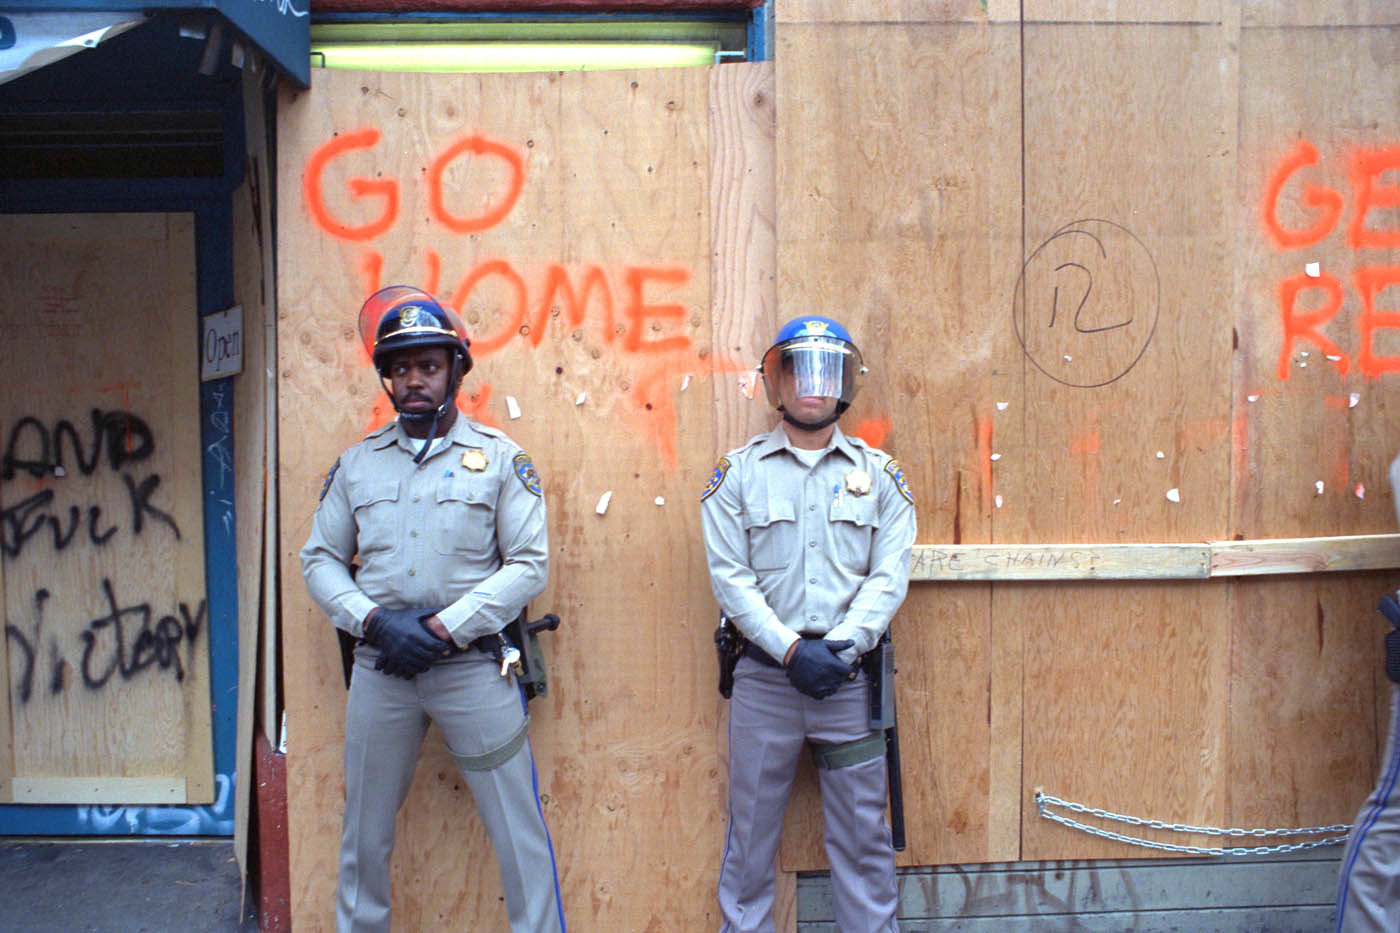 Telegraph Avenue boarded up during the 1991 Berkeley People's Park riots